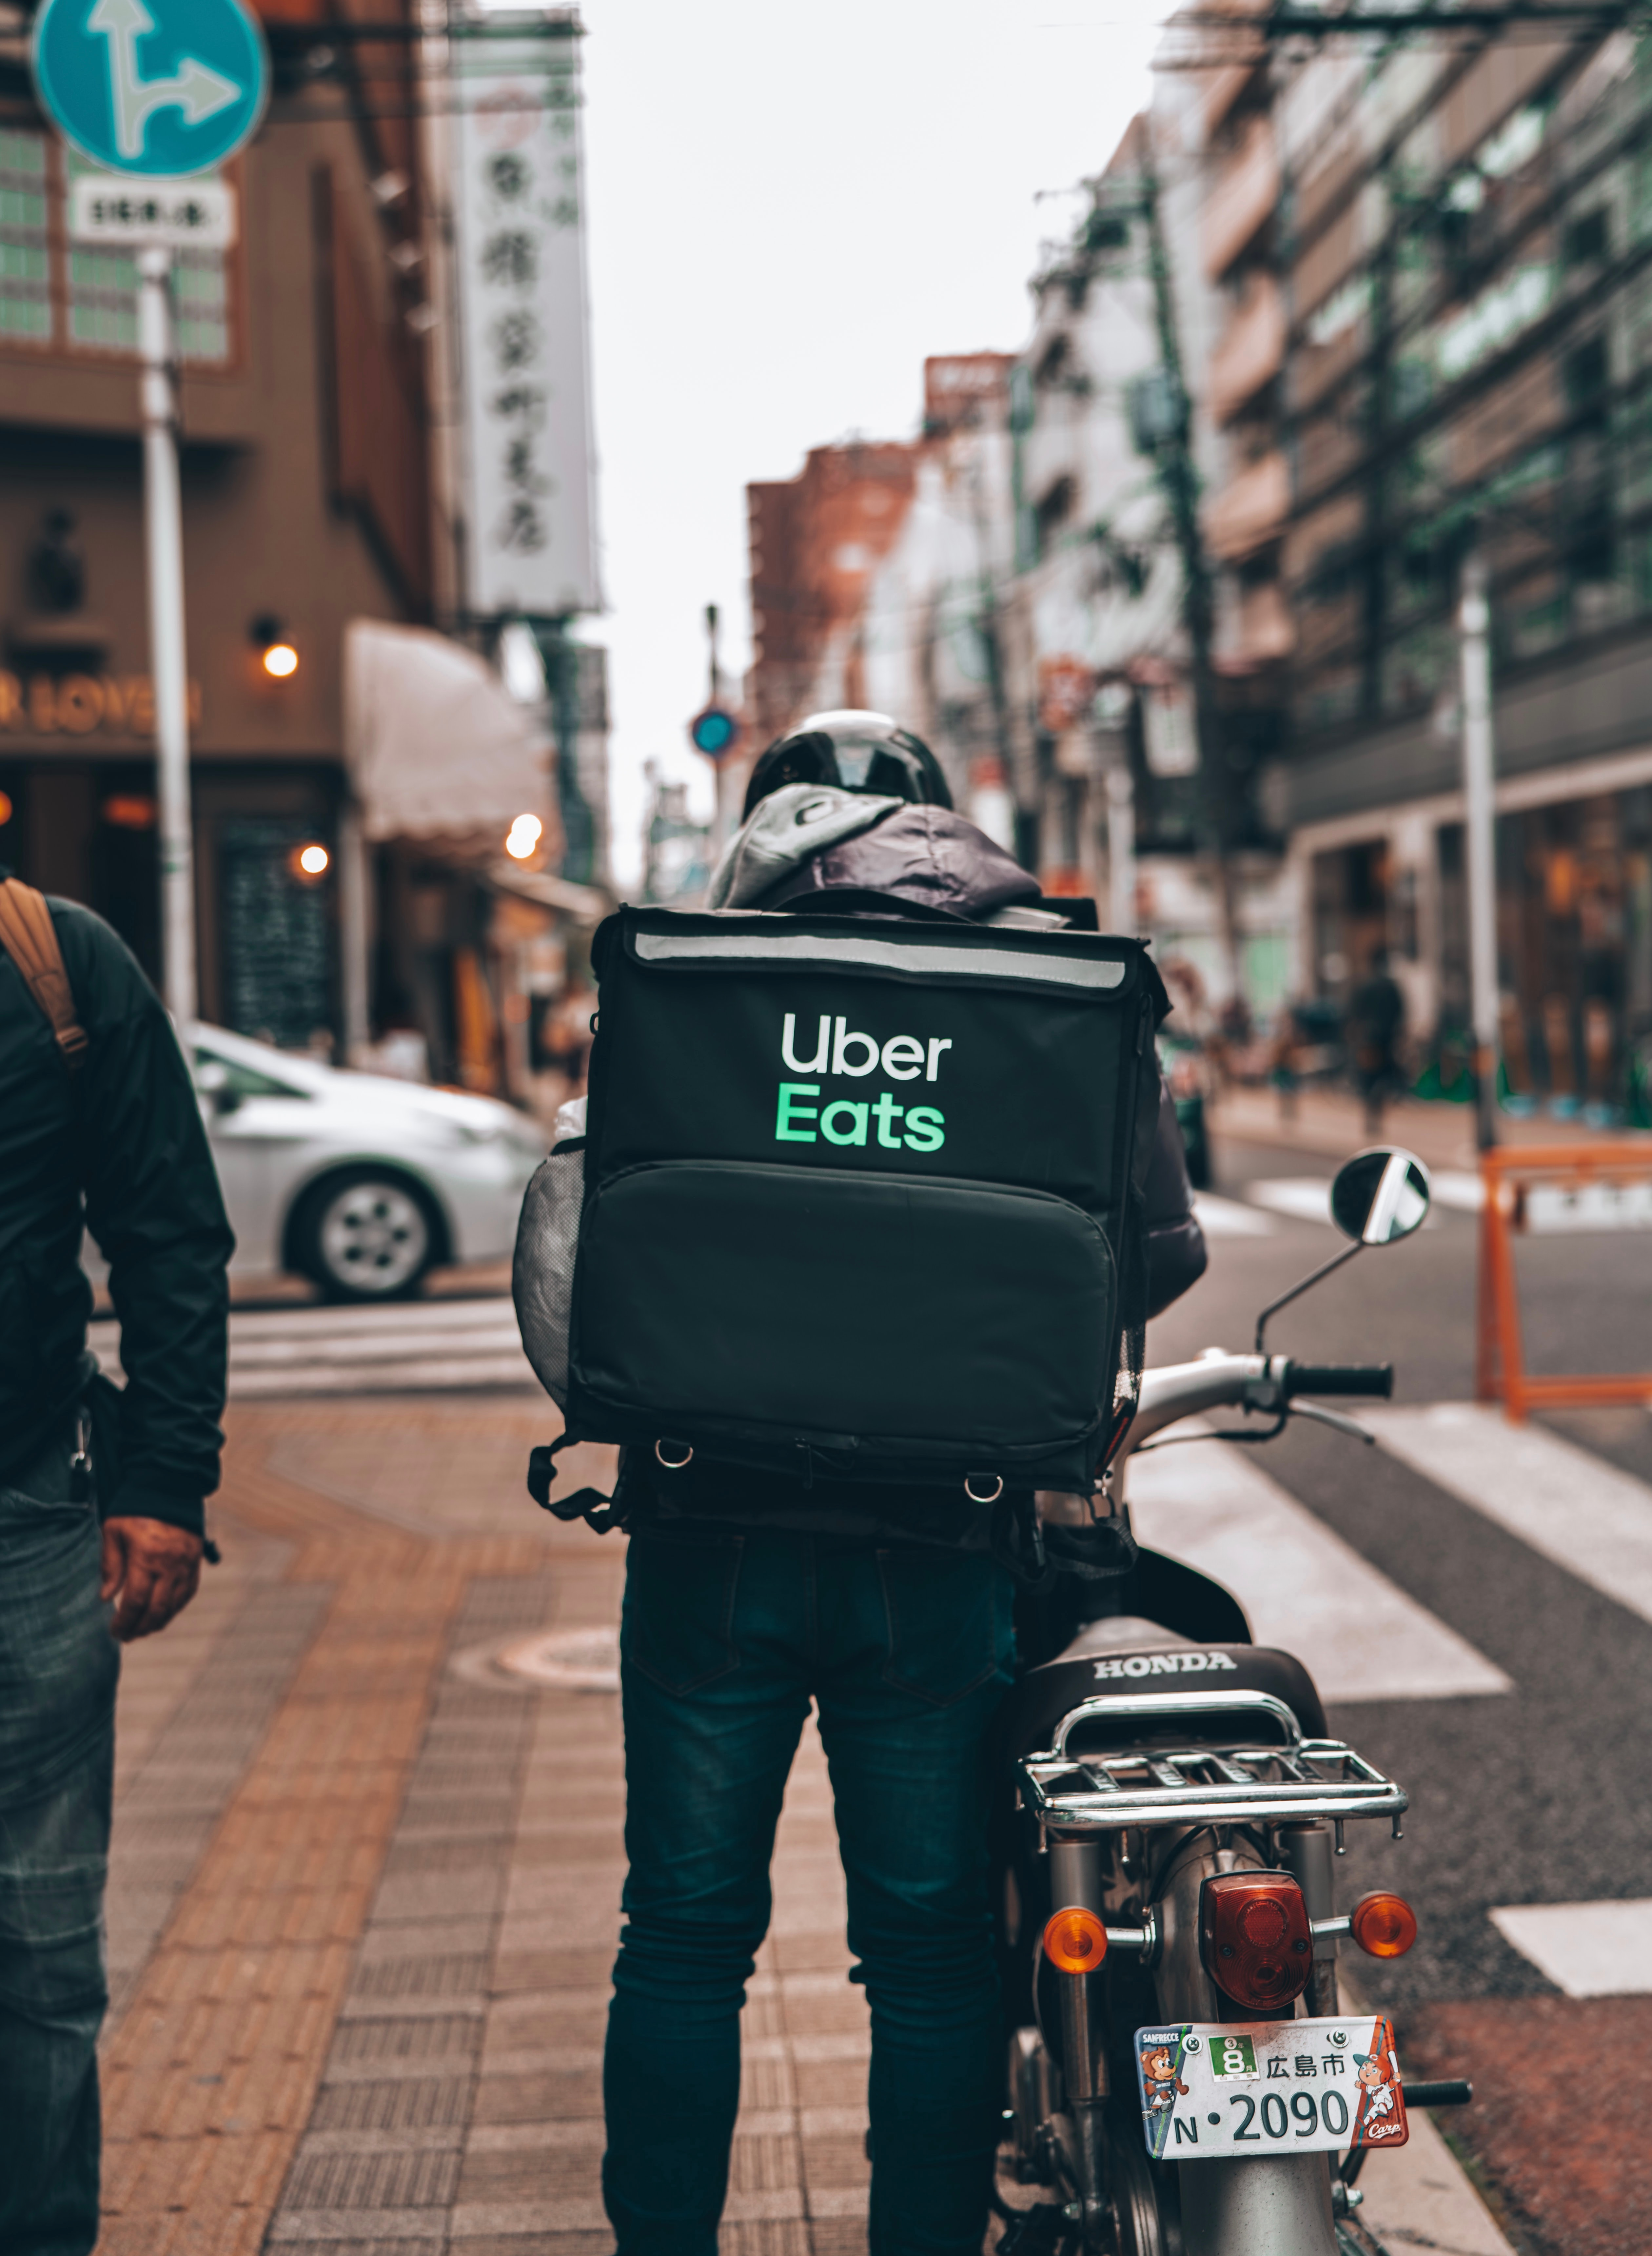 food delivery apps among diverse audiences